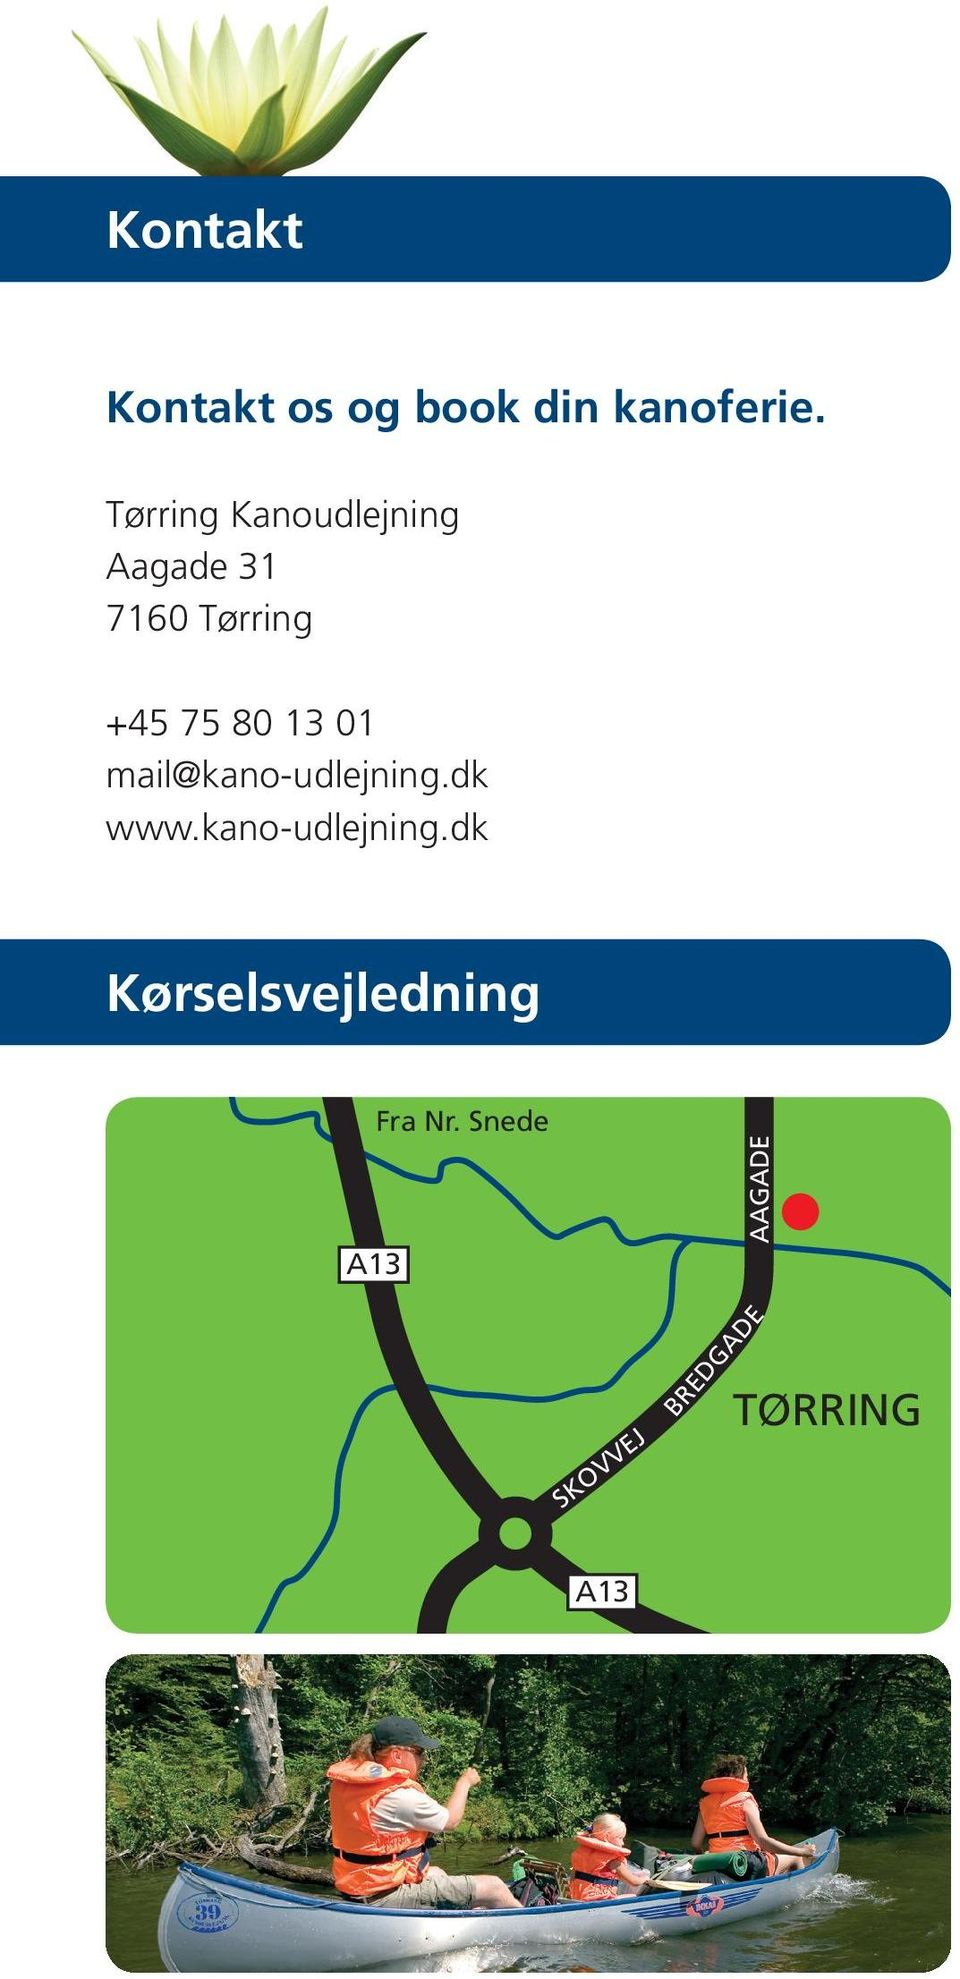 13 01 mail@kano-udlejning.